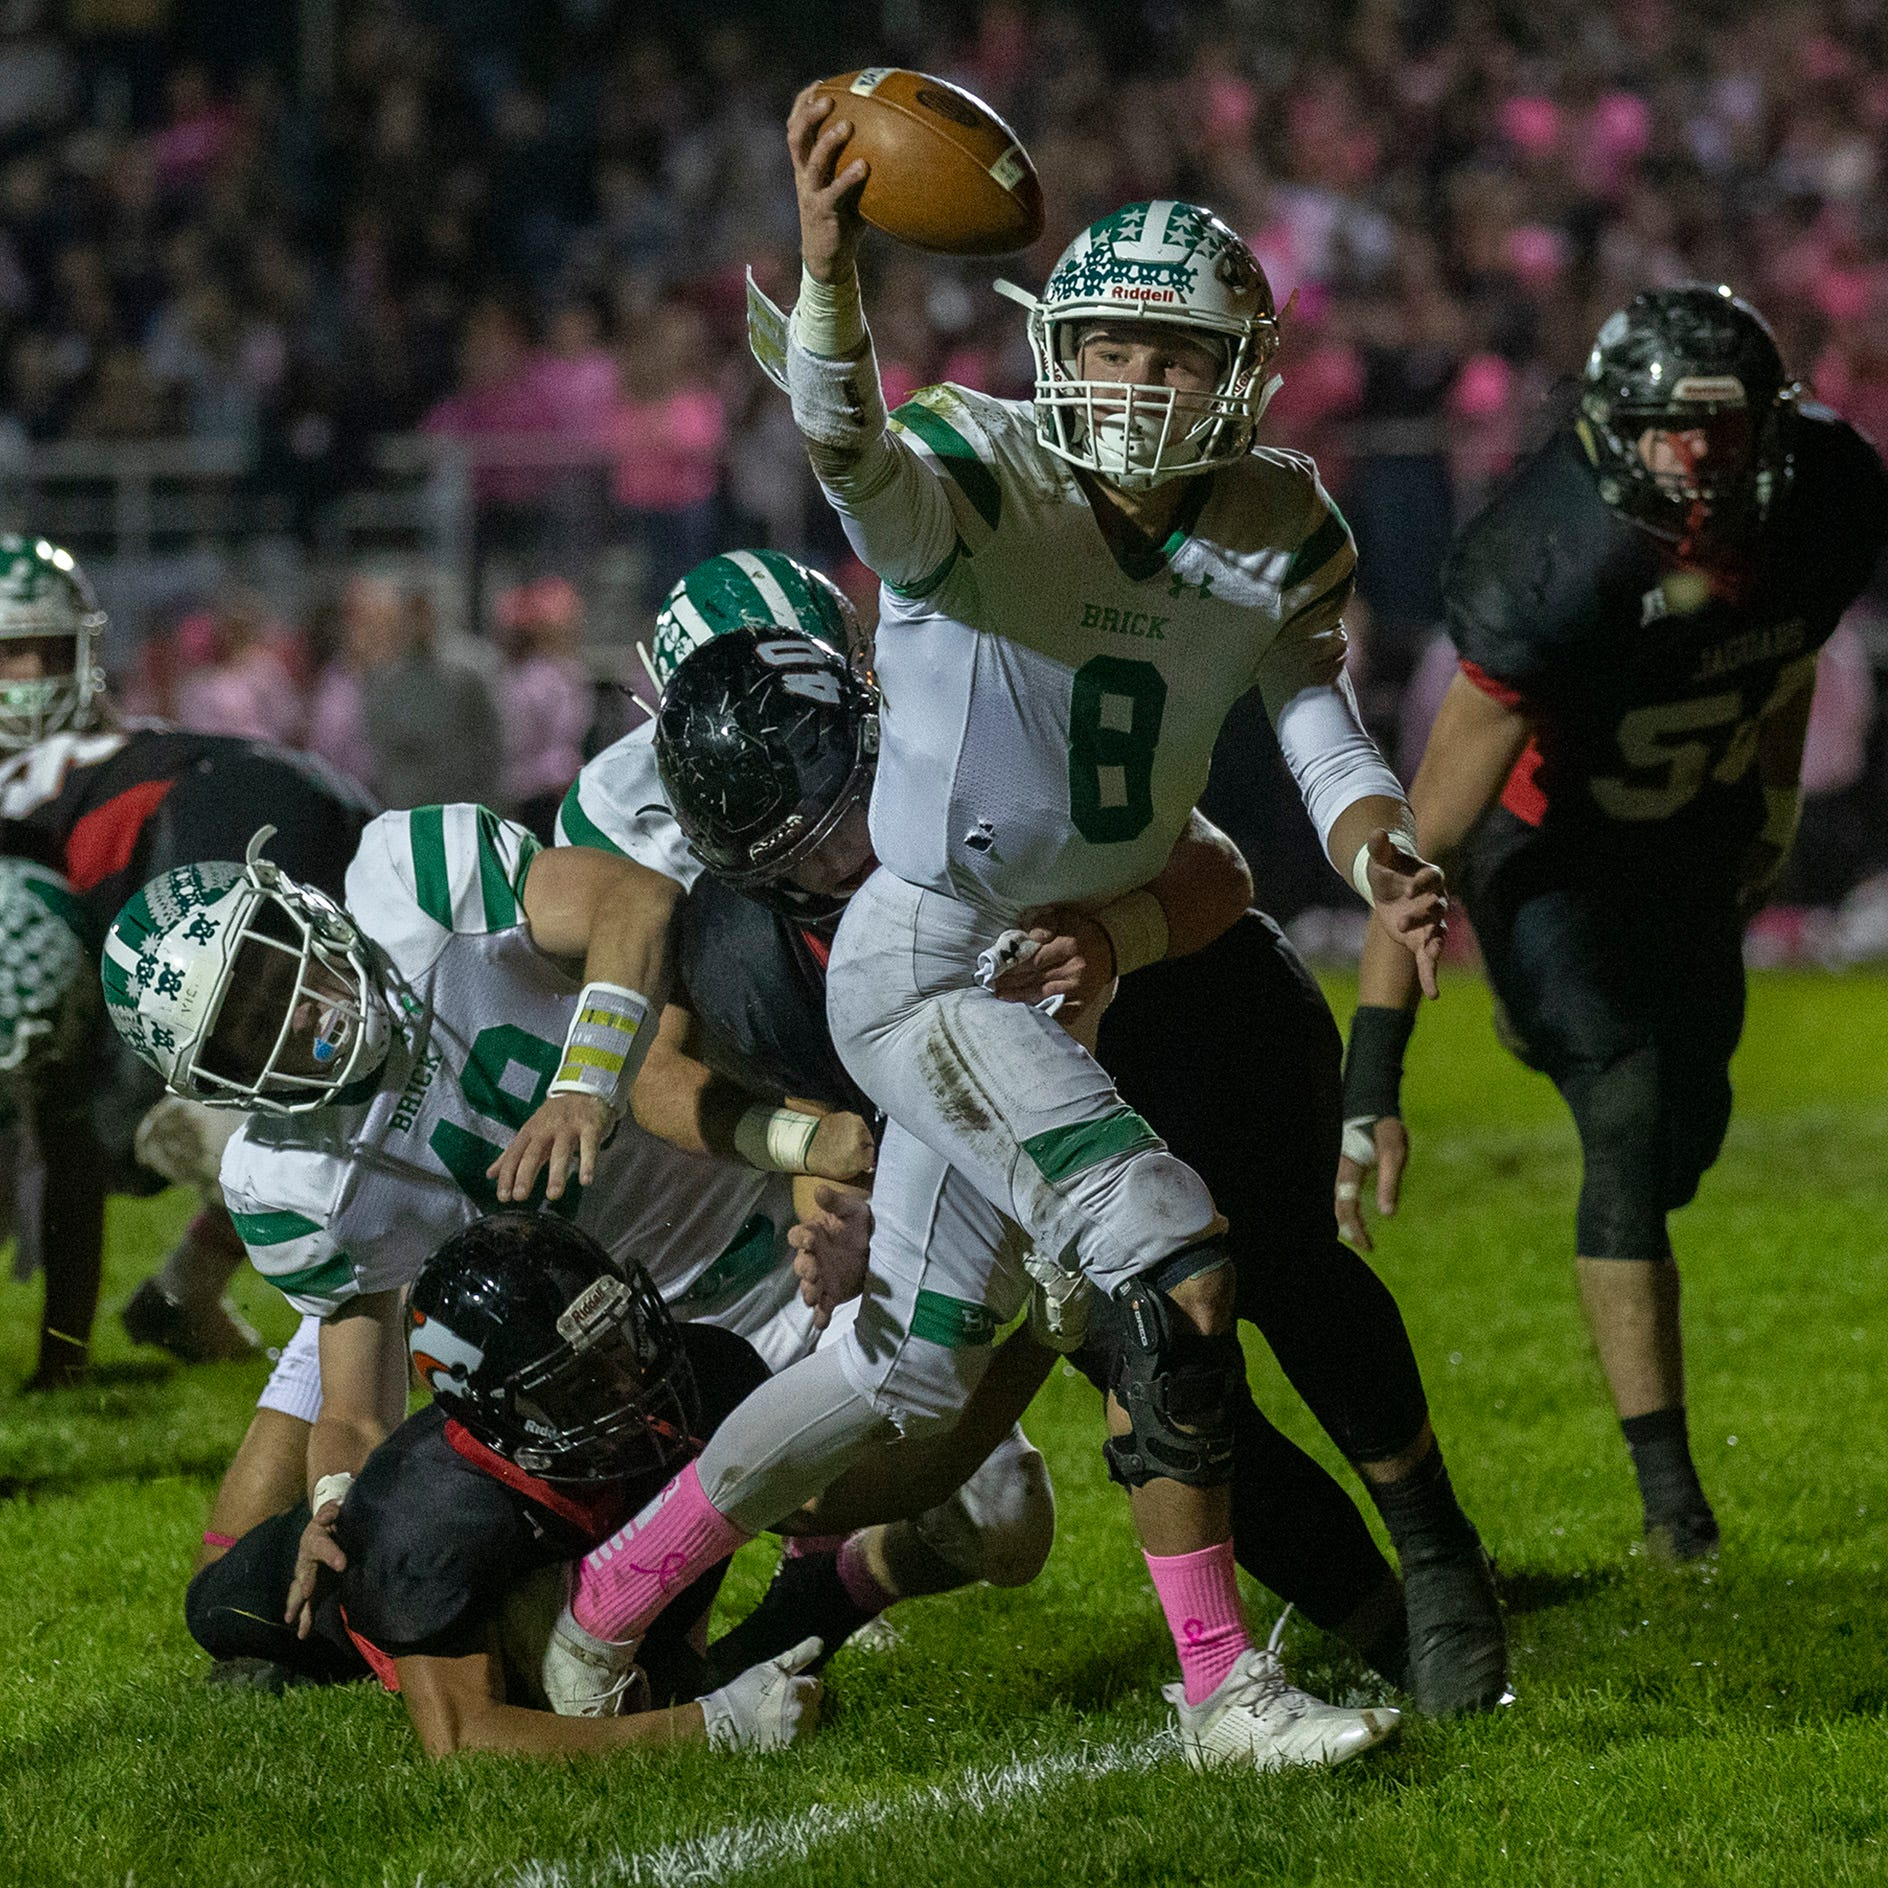 NJ football: Brick goes deep to beat Jackson Memorial